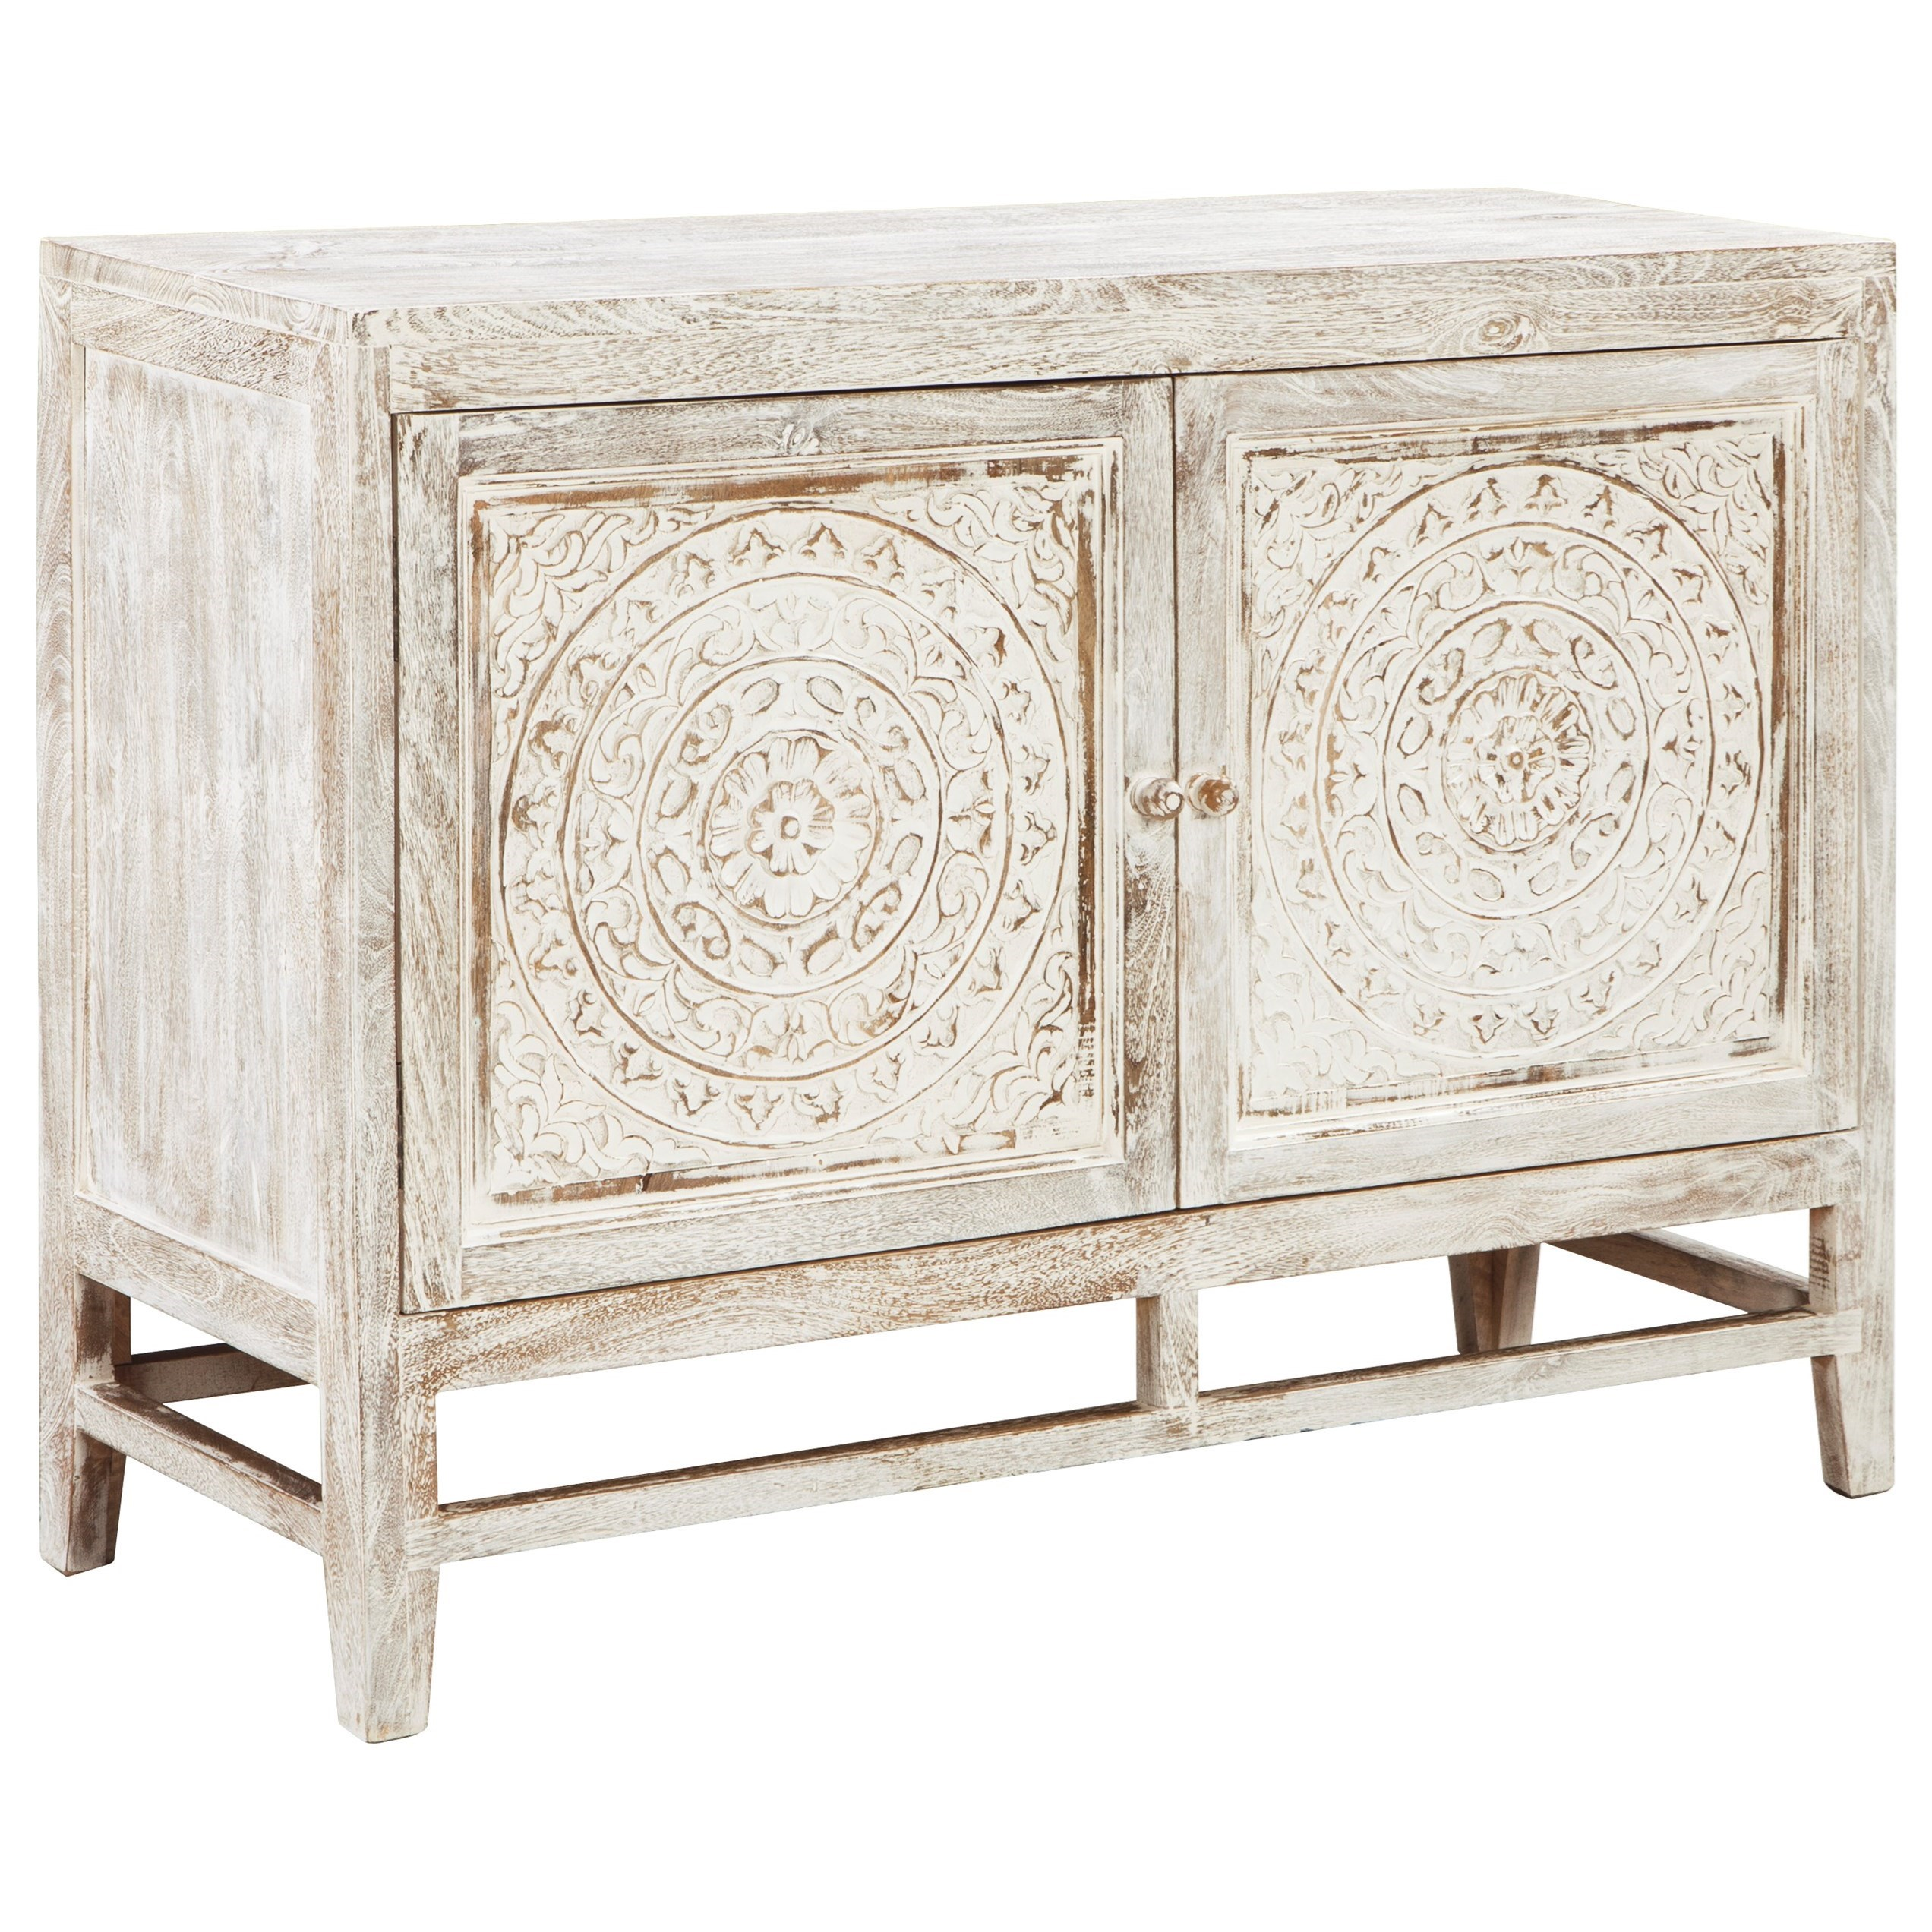 Signature Design by Ashley Fossil Ridge Door Accent Cabinet - Item Number: A4000038